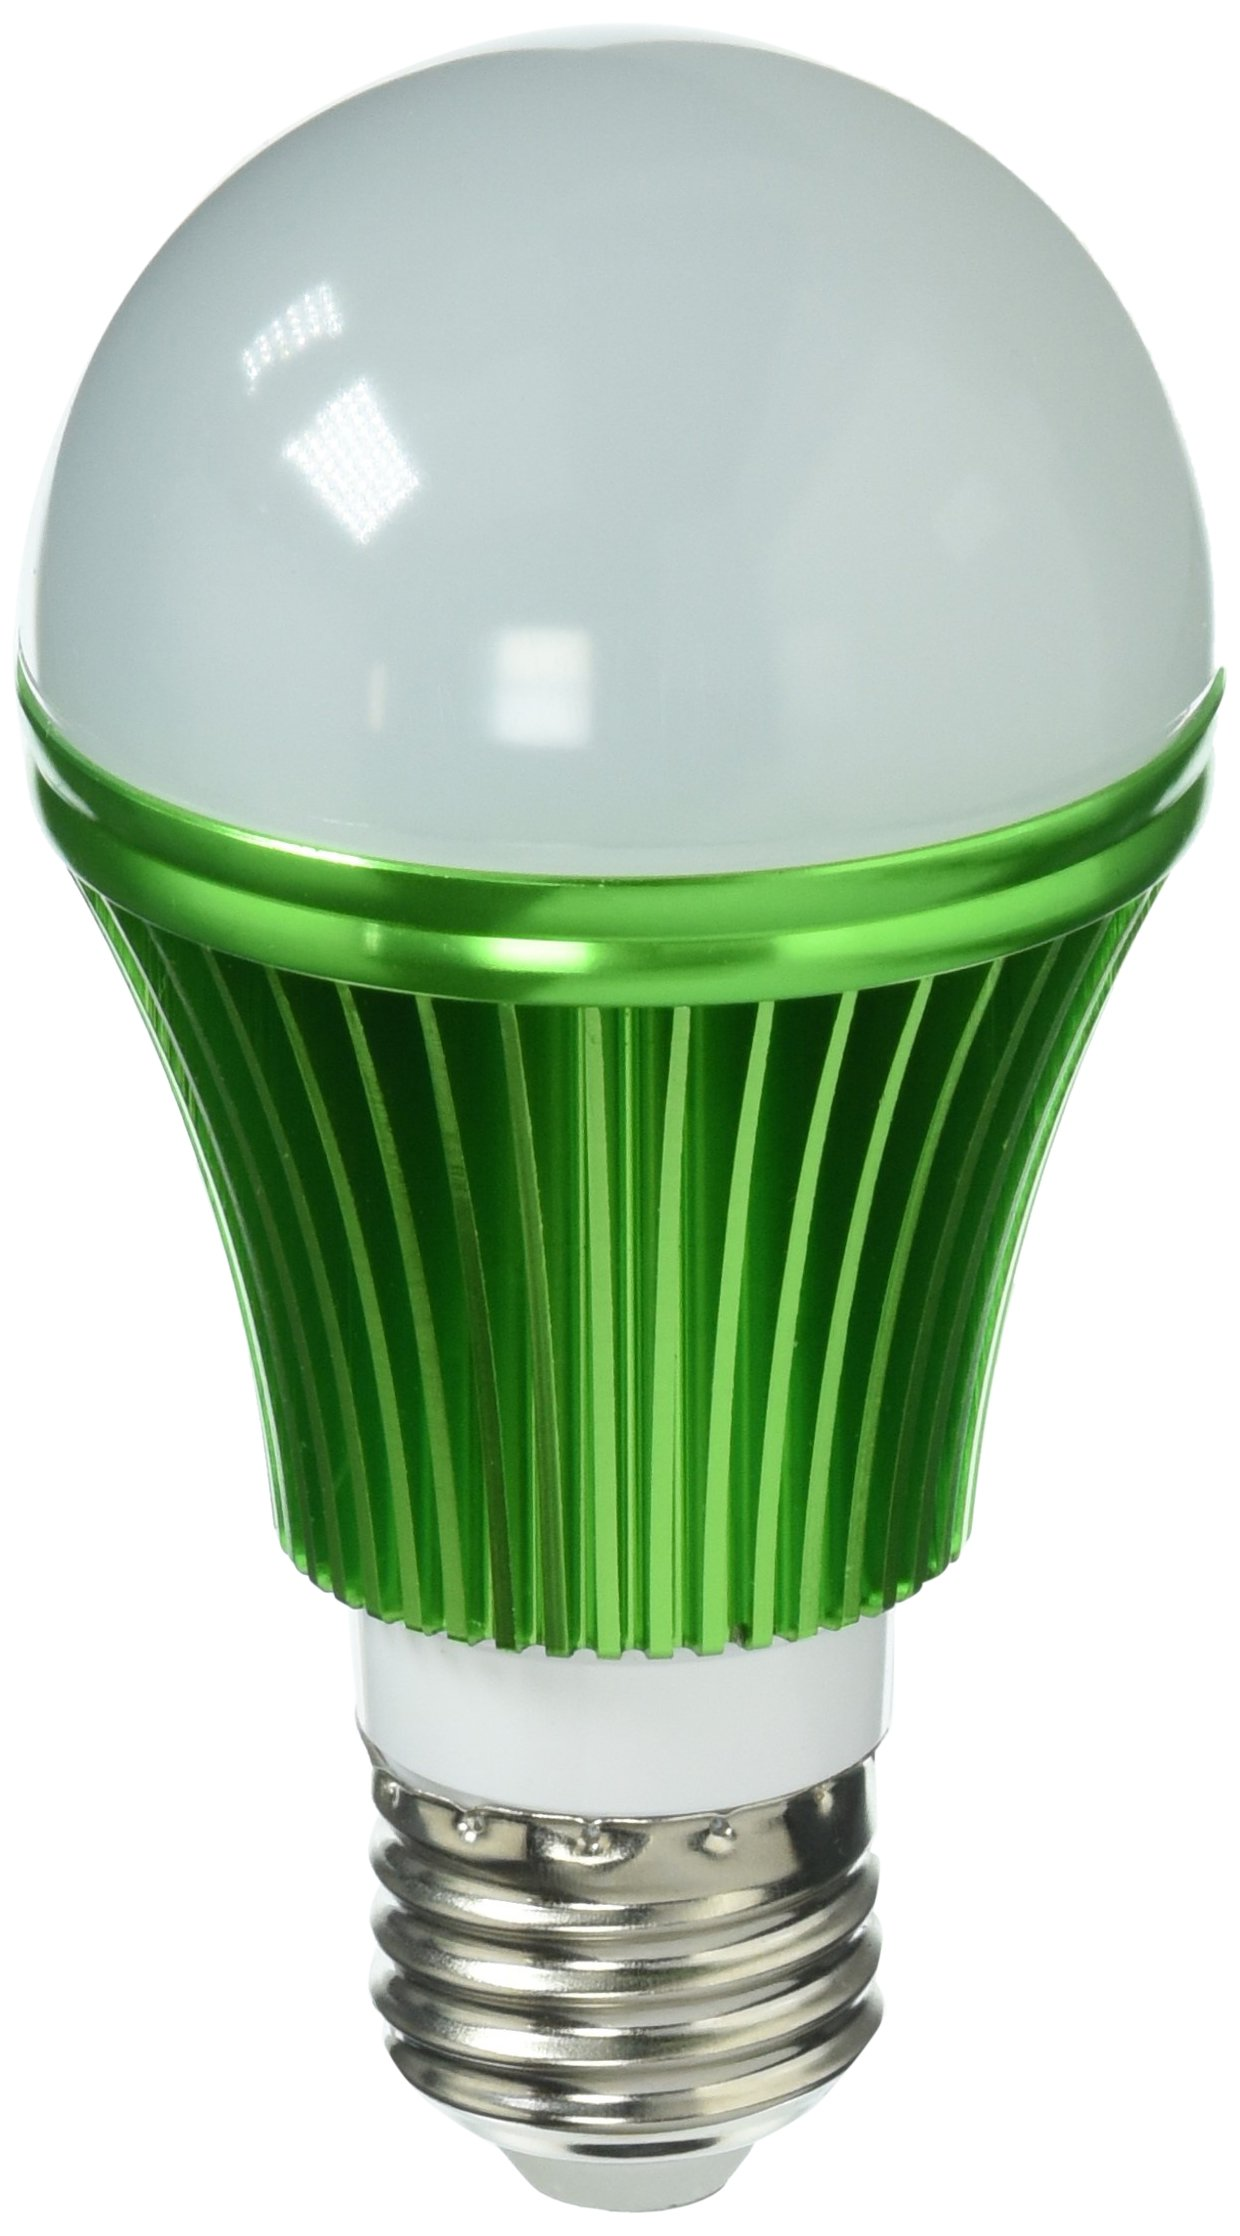 AgroLED 960417 Green LED Night Light, 6W